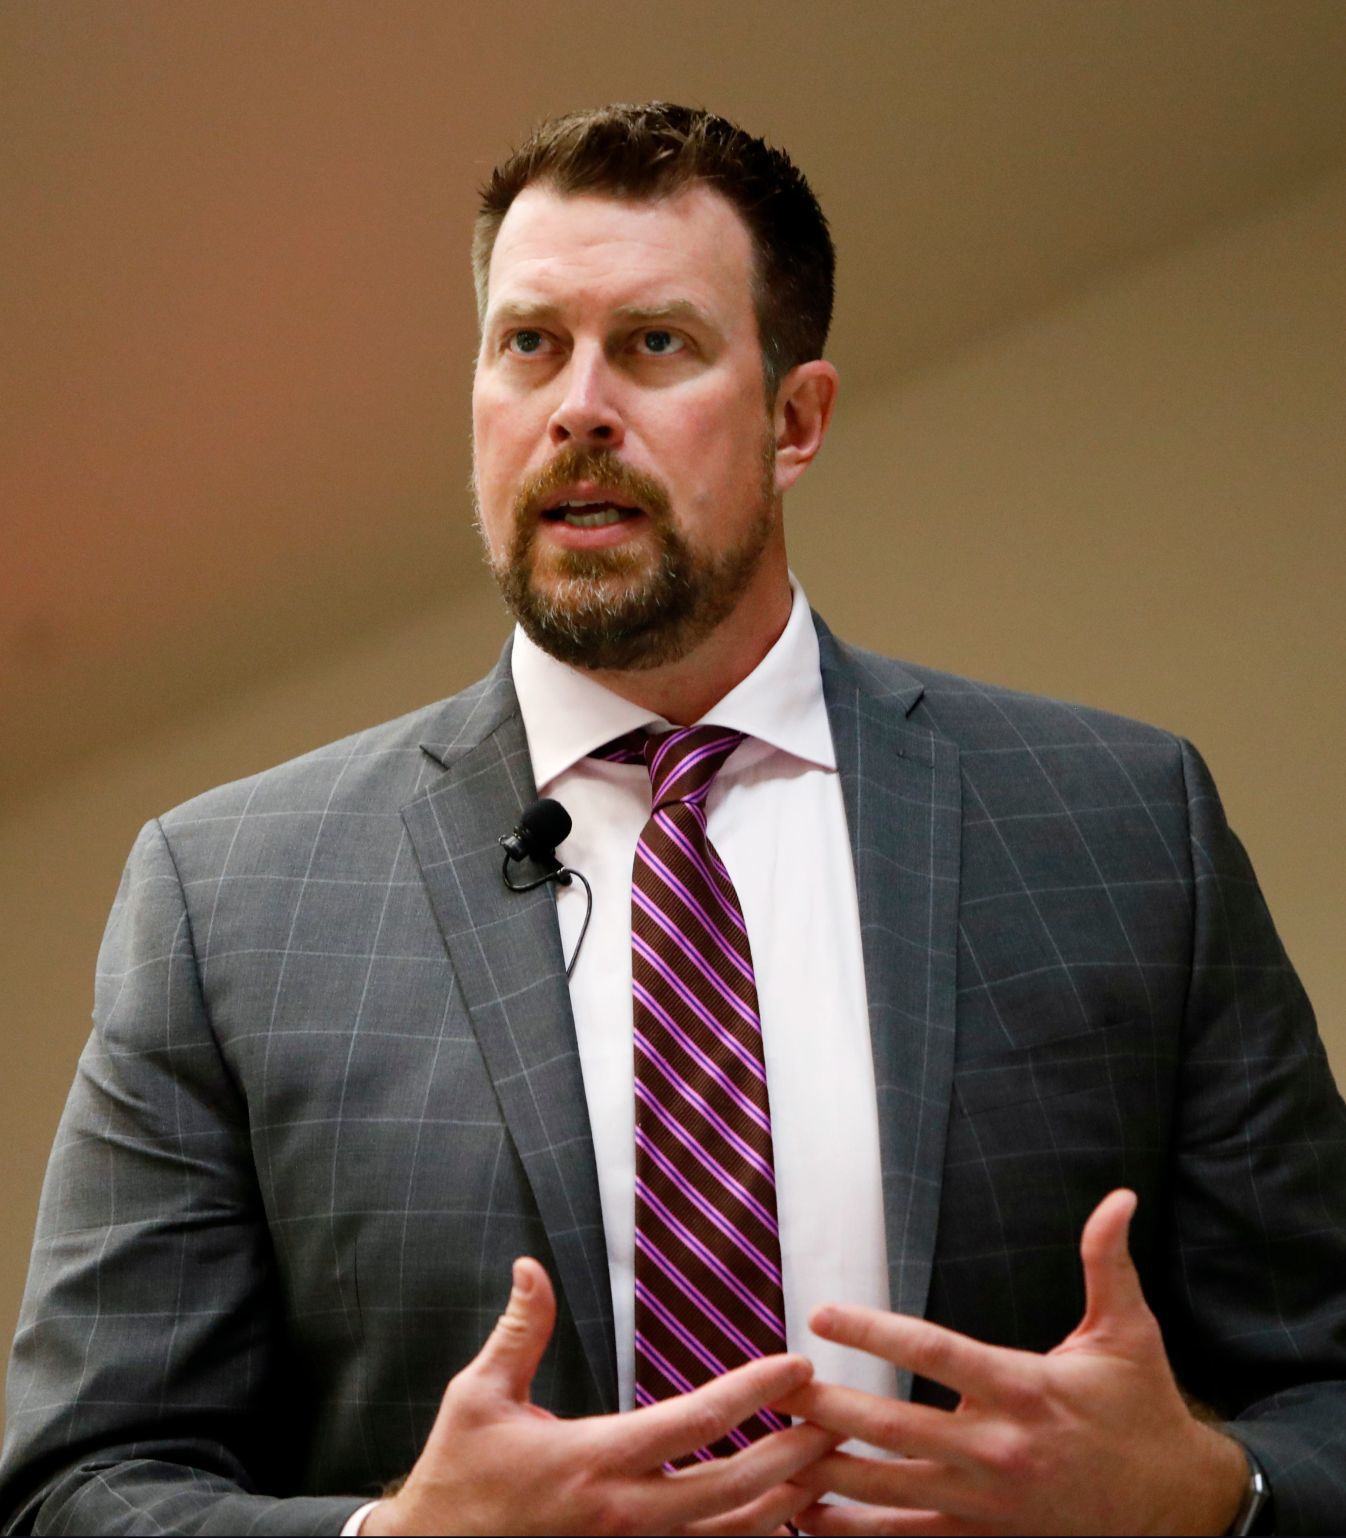 Ryan Leaf Former Nfl Quarterback And Montana Native